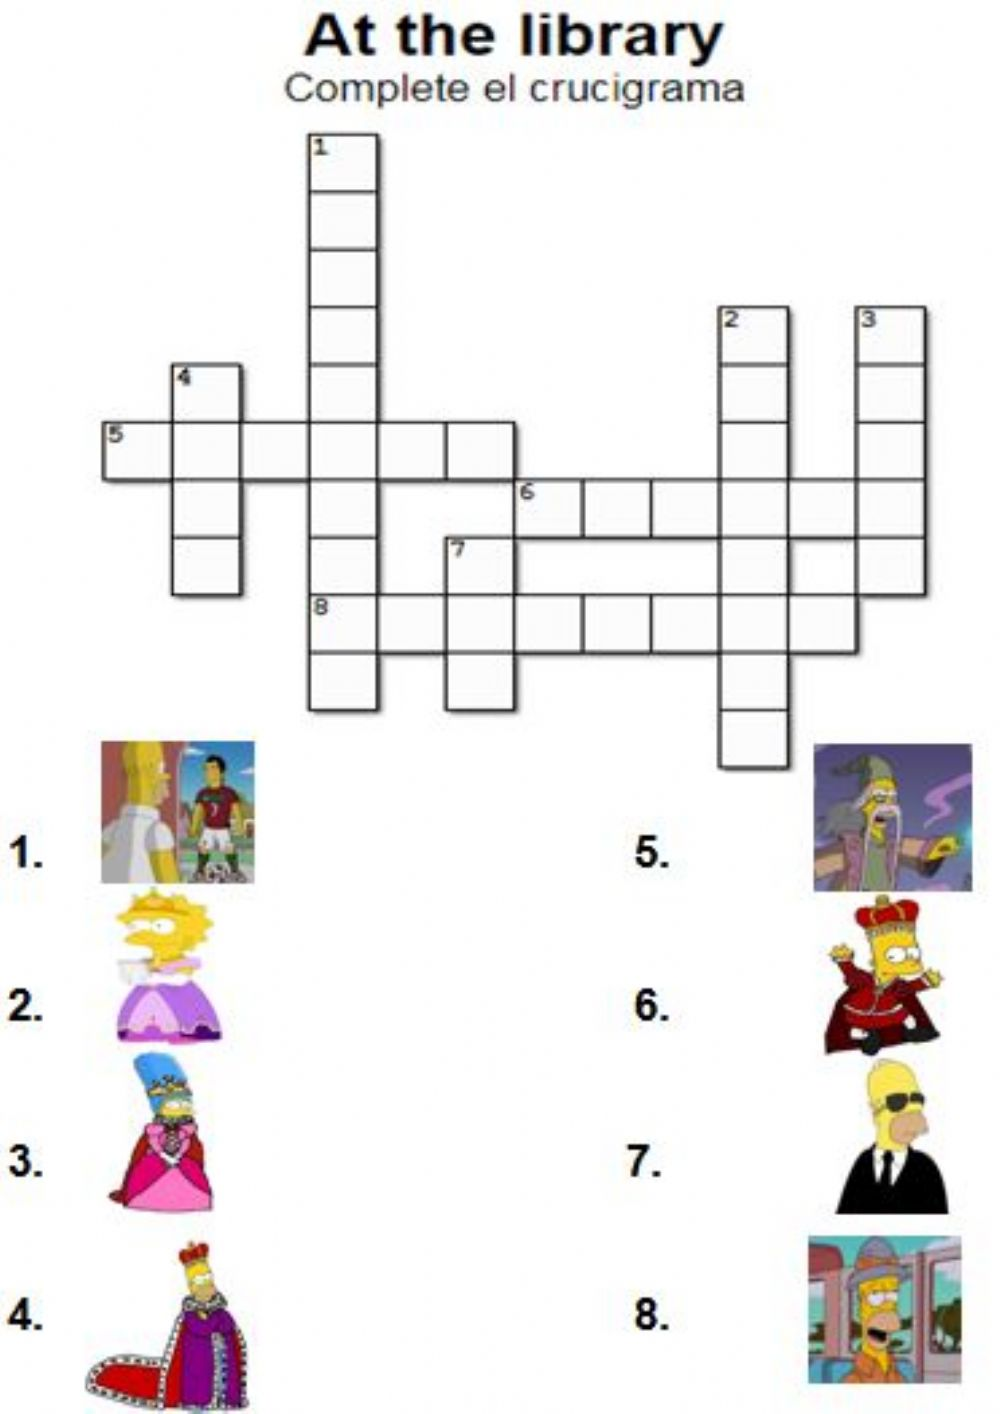 photograph regarding Work Sheet Library referred to as At the library. Crossword - Interactive worksheet